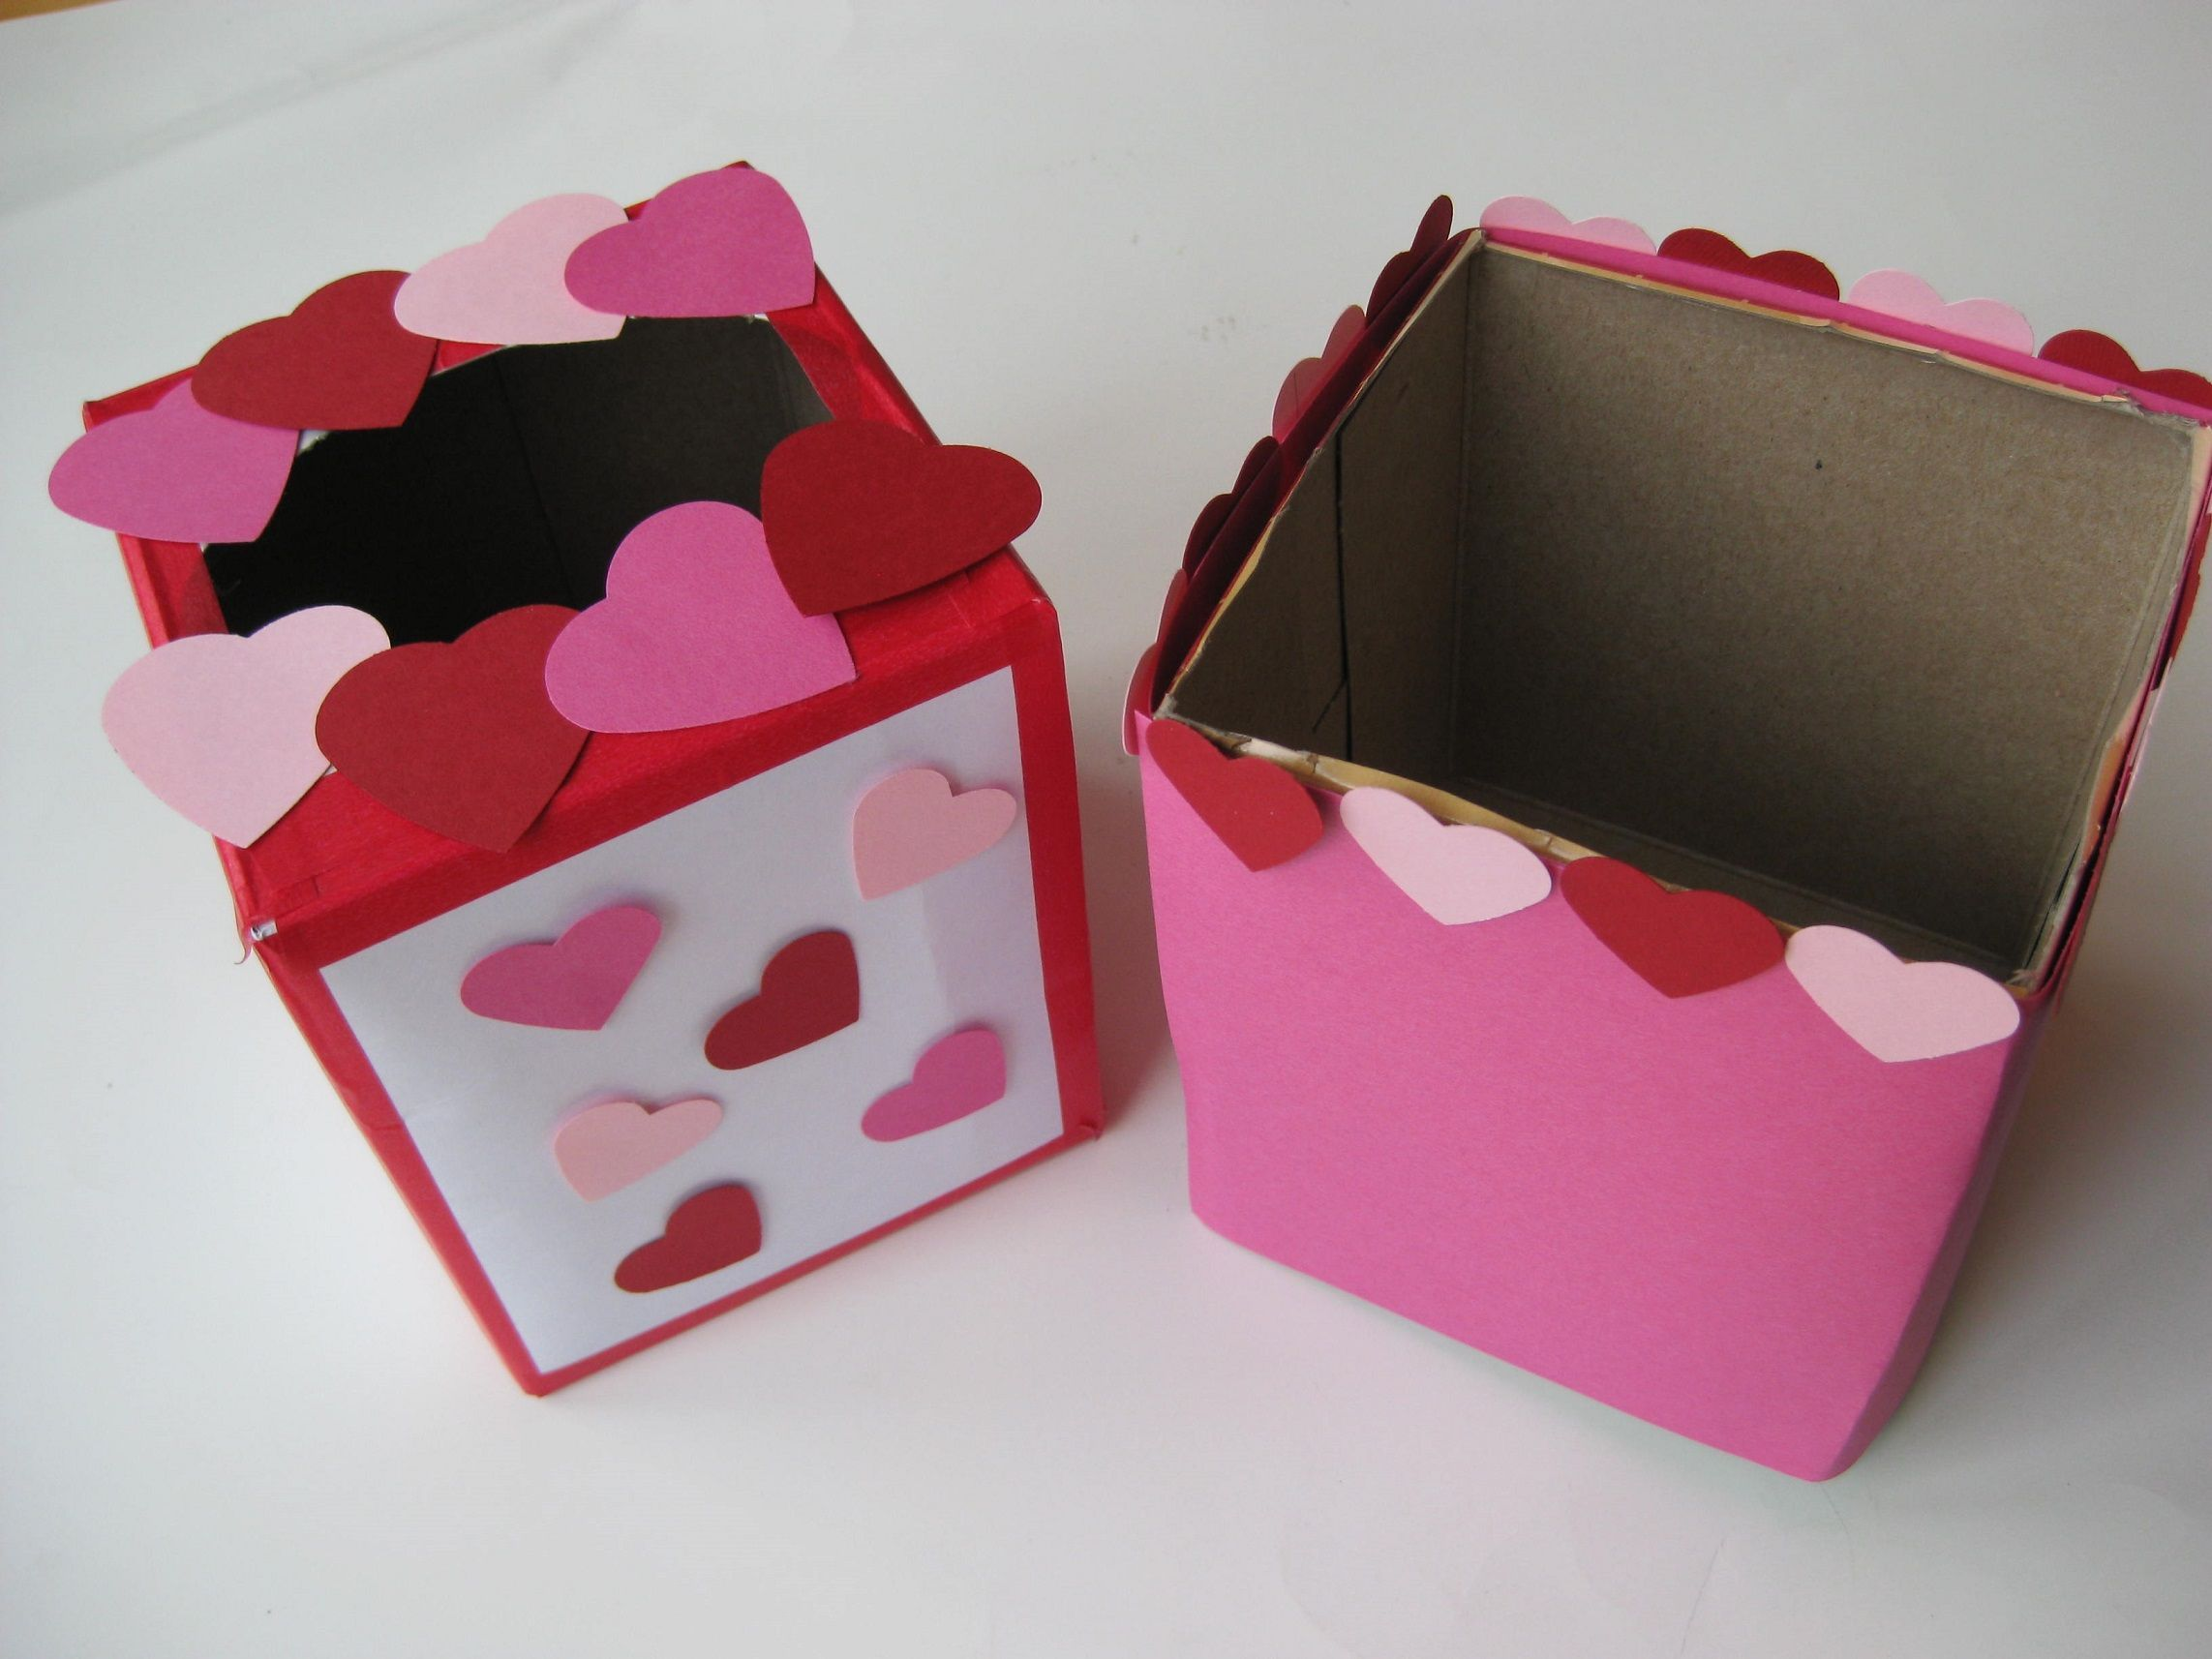 Shoe Box Decorating Ideas Here Healthy Creative Romantic Valentine's Day Gift Ideas